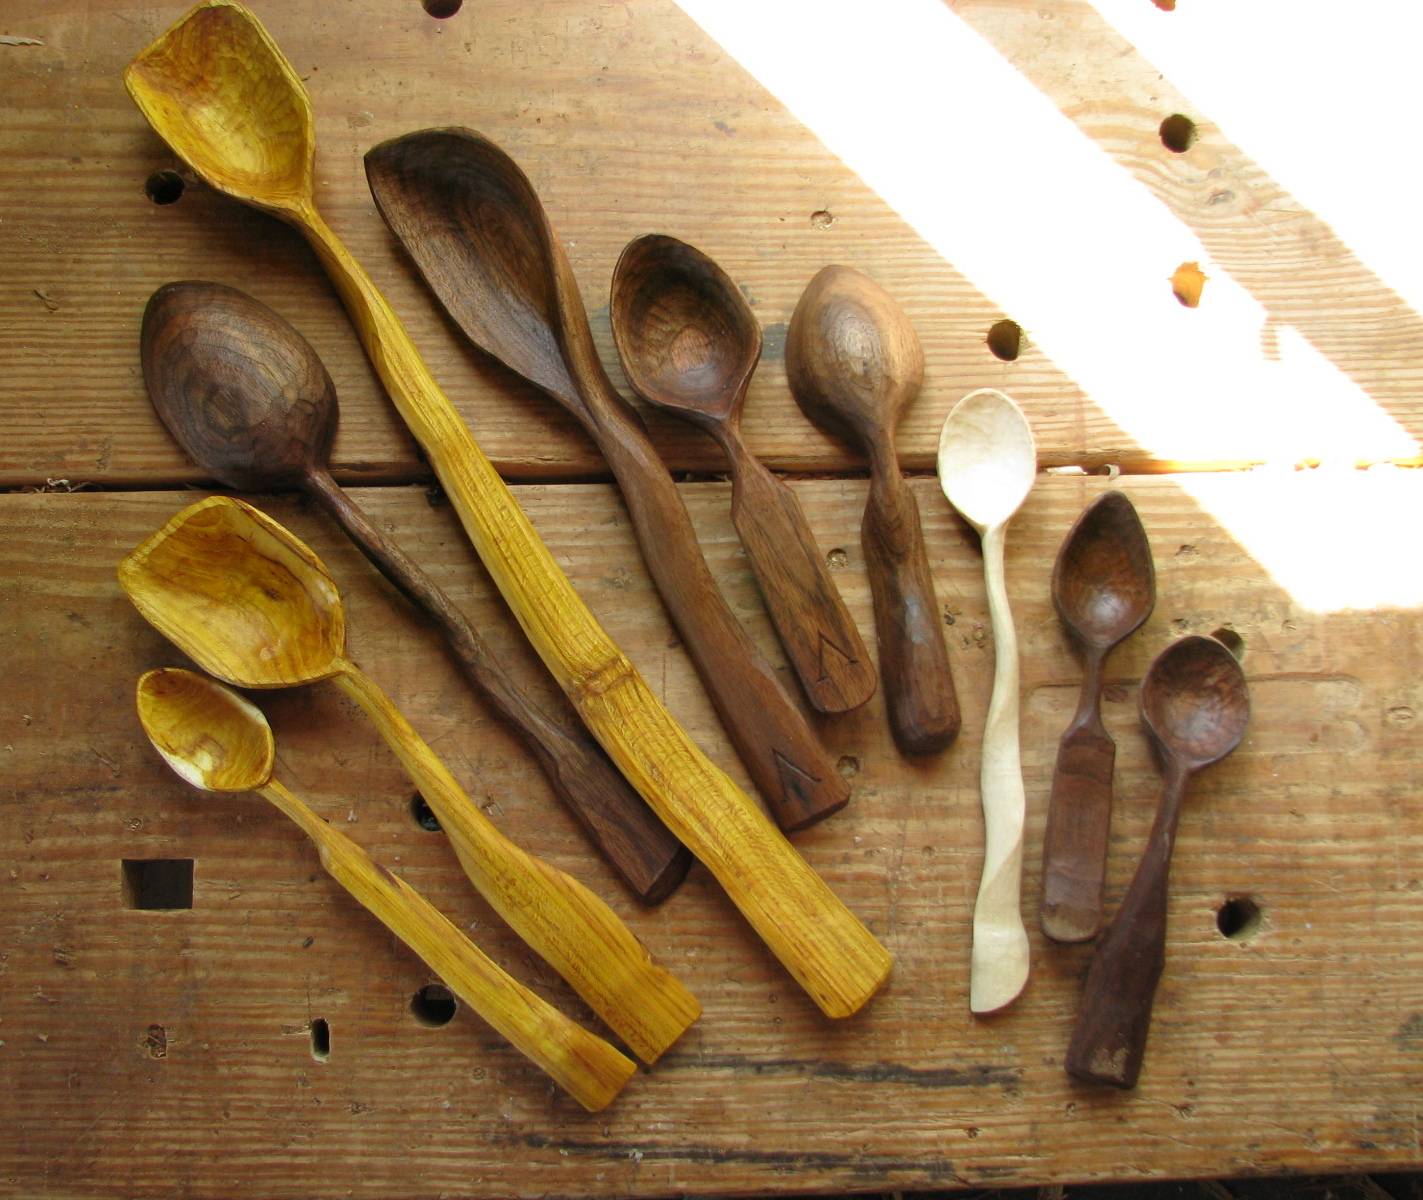 Carved spoons the school of transfer energy